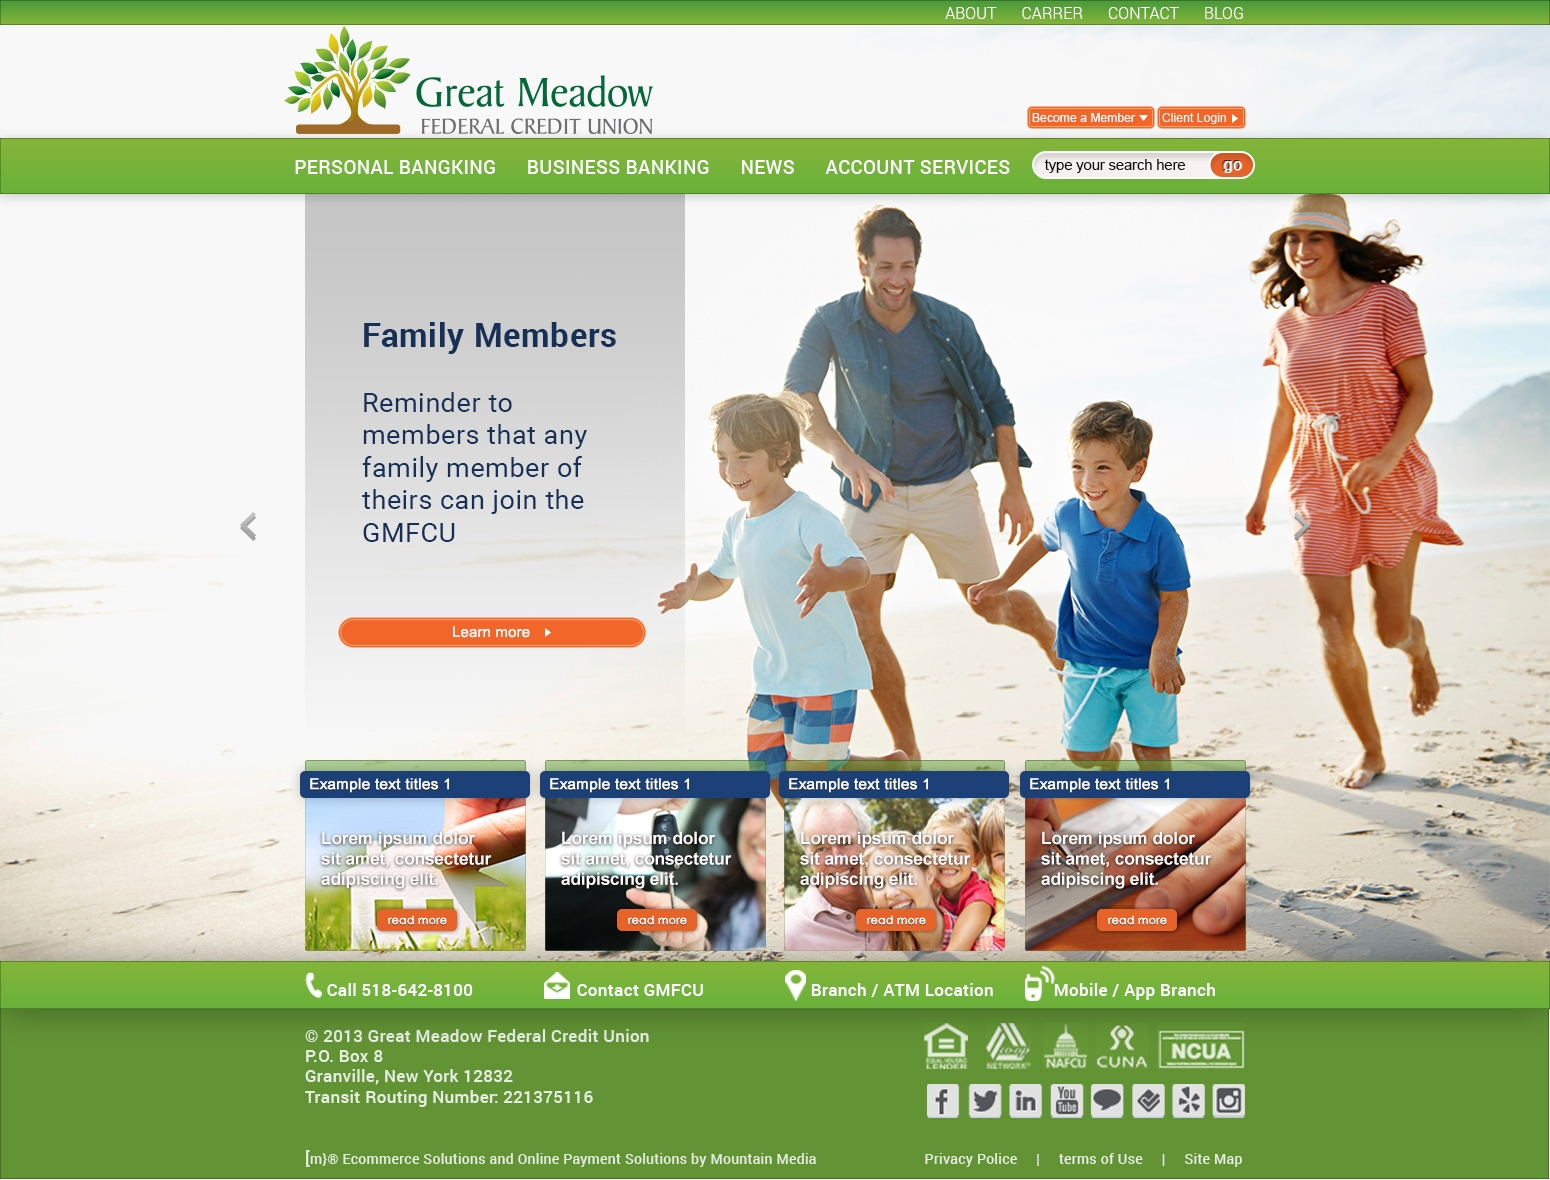 Website Design for Local Federal Credit Union